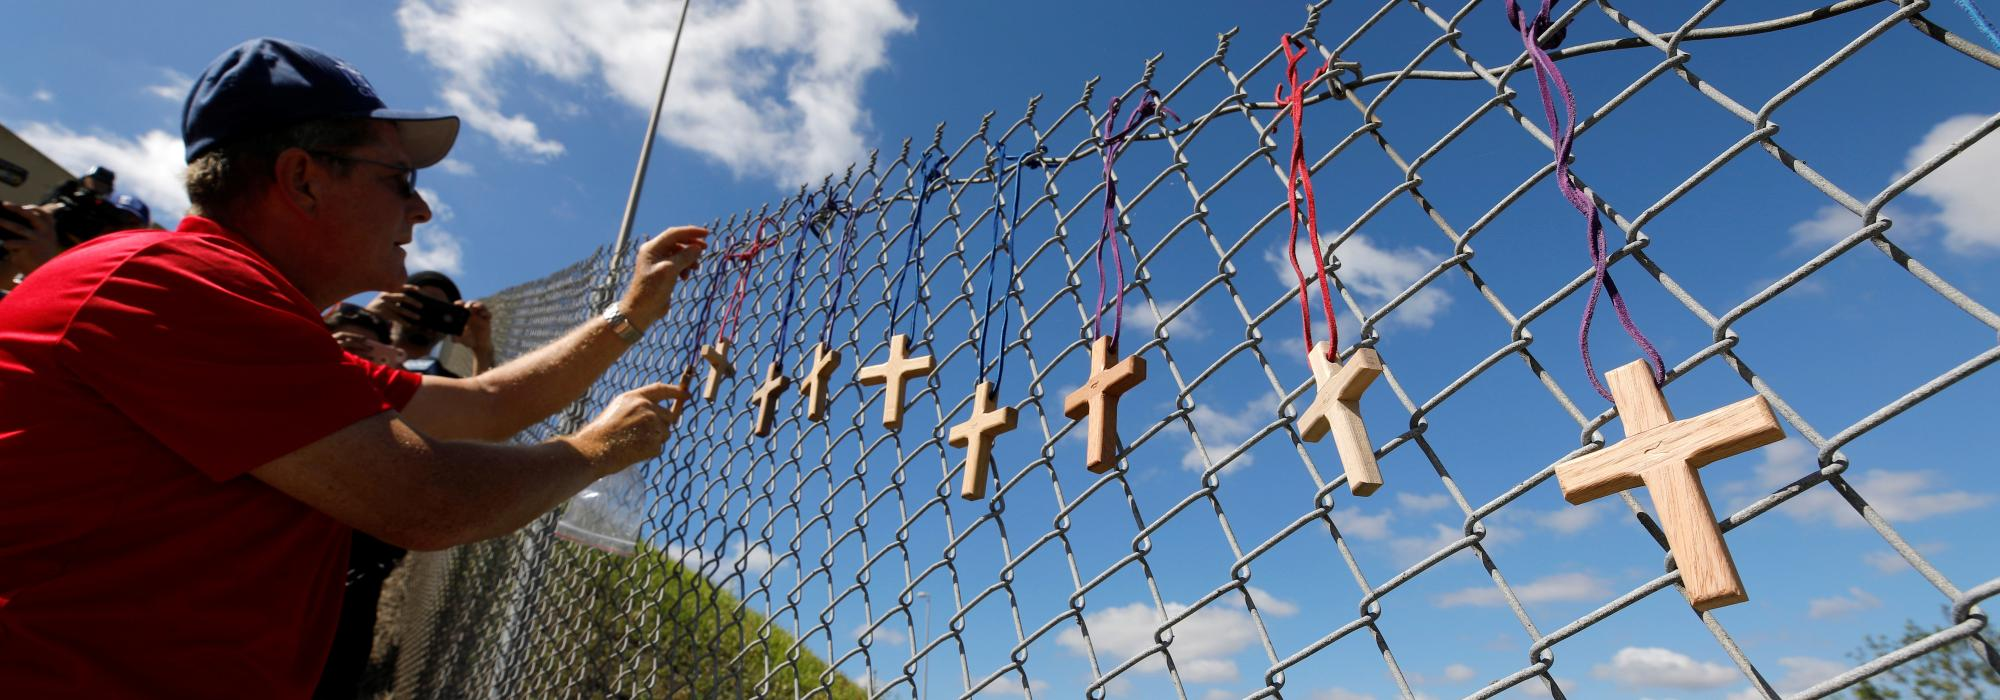 Picture above: Bob Ossler, chaplain with the Cape Coral volunteer fire department, places seventeen crosses for the victims of the shooting at Marjory Stoneman Douglas High School on a fence a short distance from the school in Parkland, Fla. Image via Reuters/Jonathan Drake